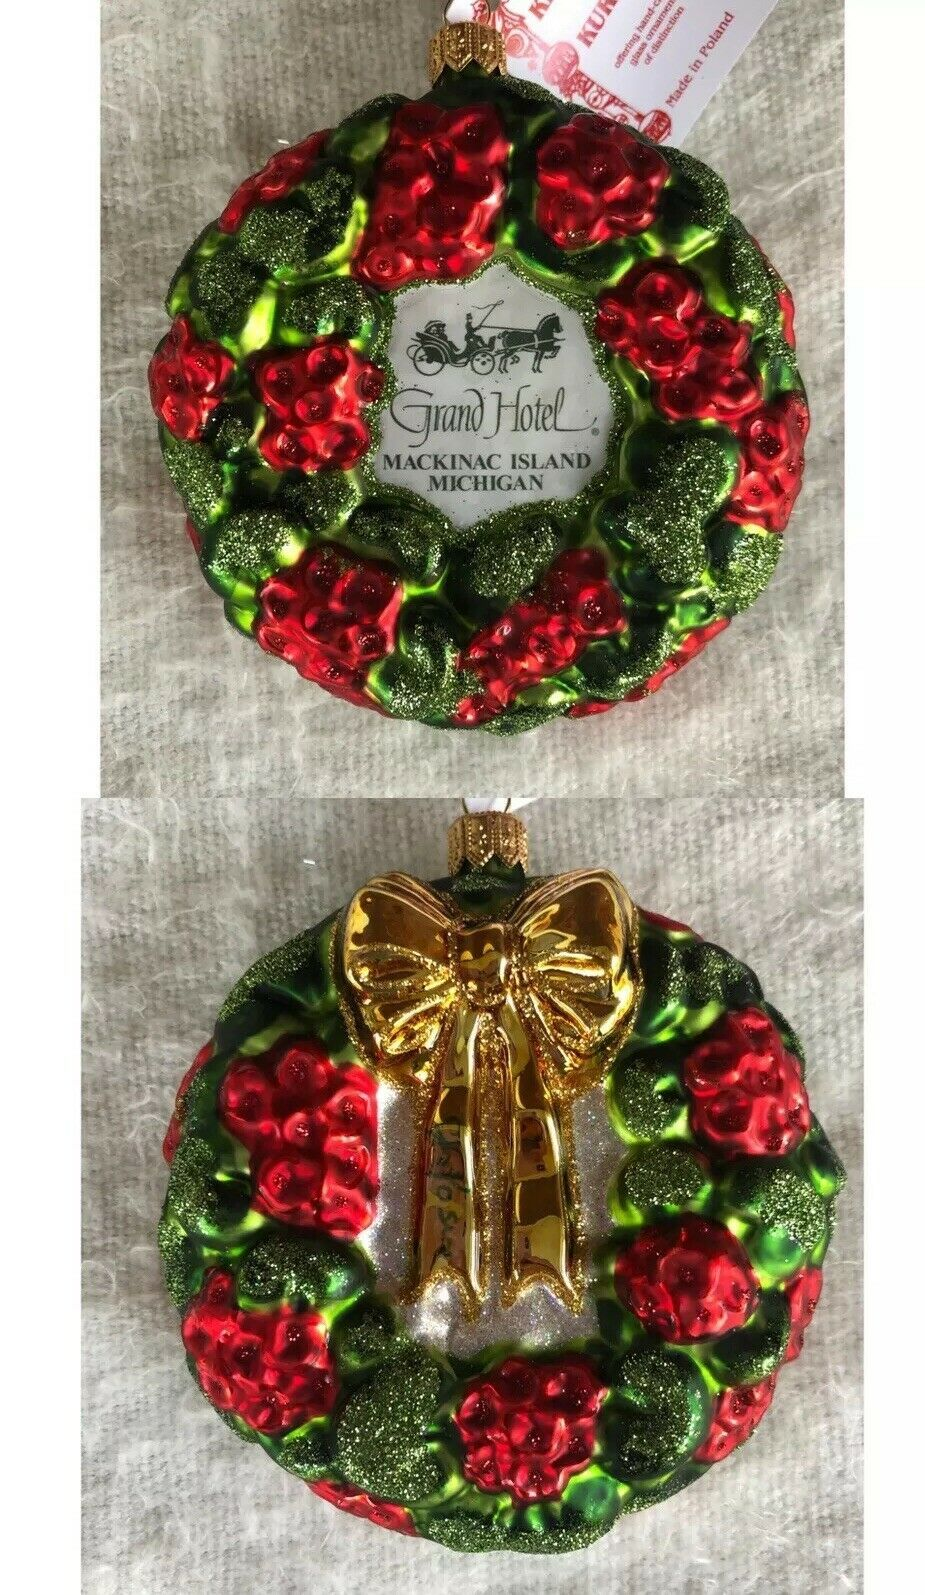 Primary image for Grand Hotel Glass Christmas Ornament Red Green Wreath Mackinac Island Michigan